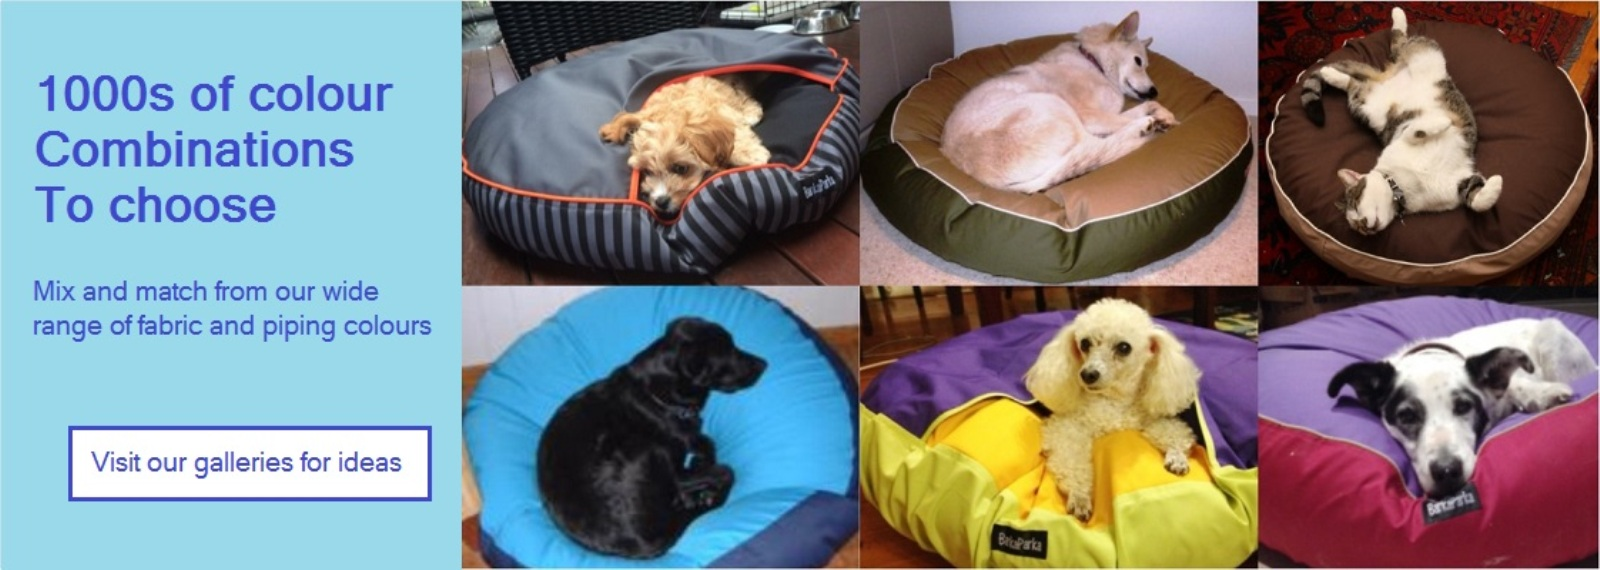 dog-bed-colour-combinations